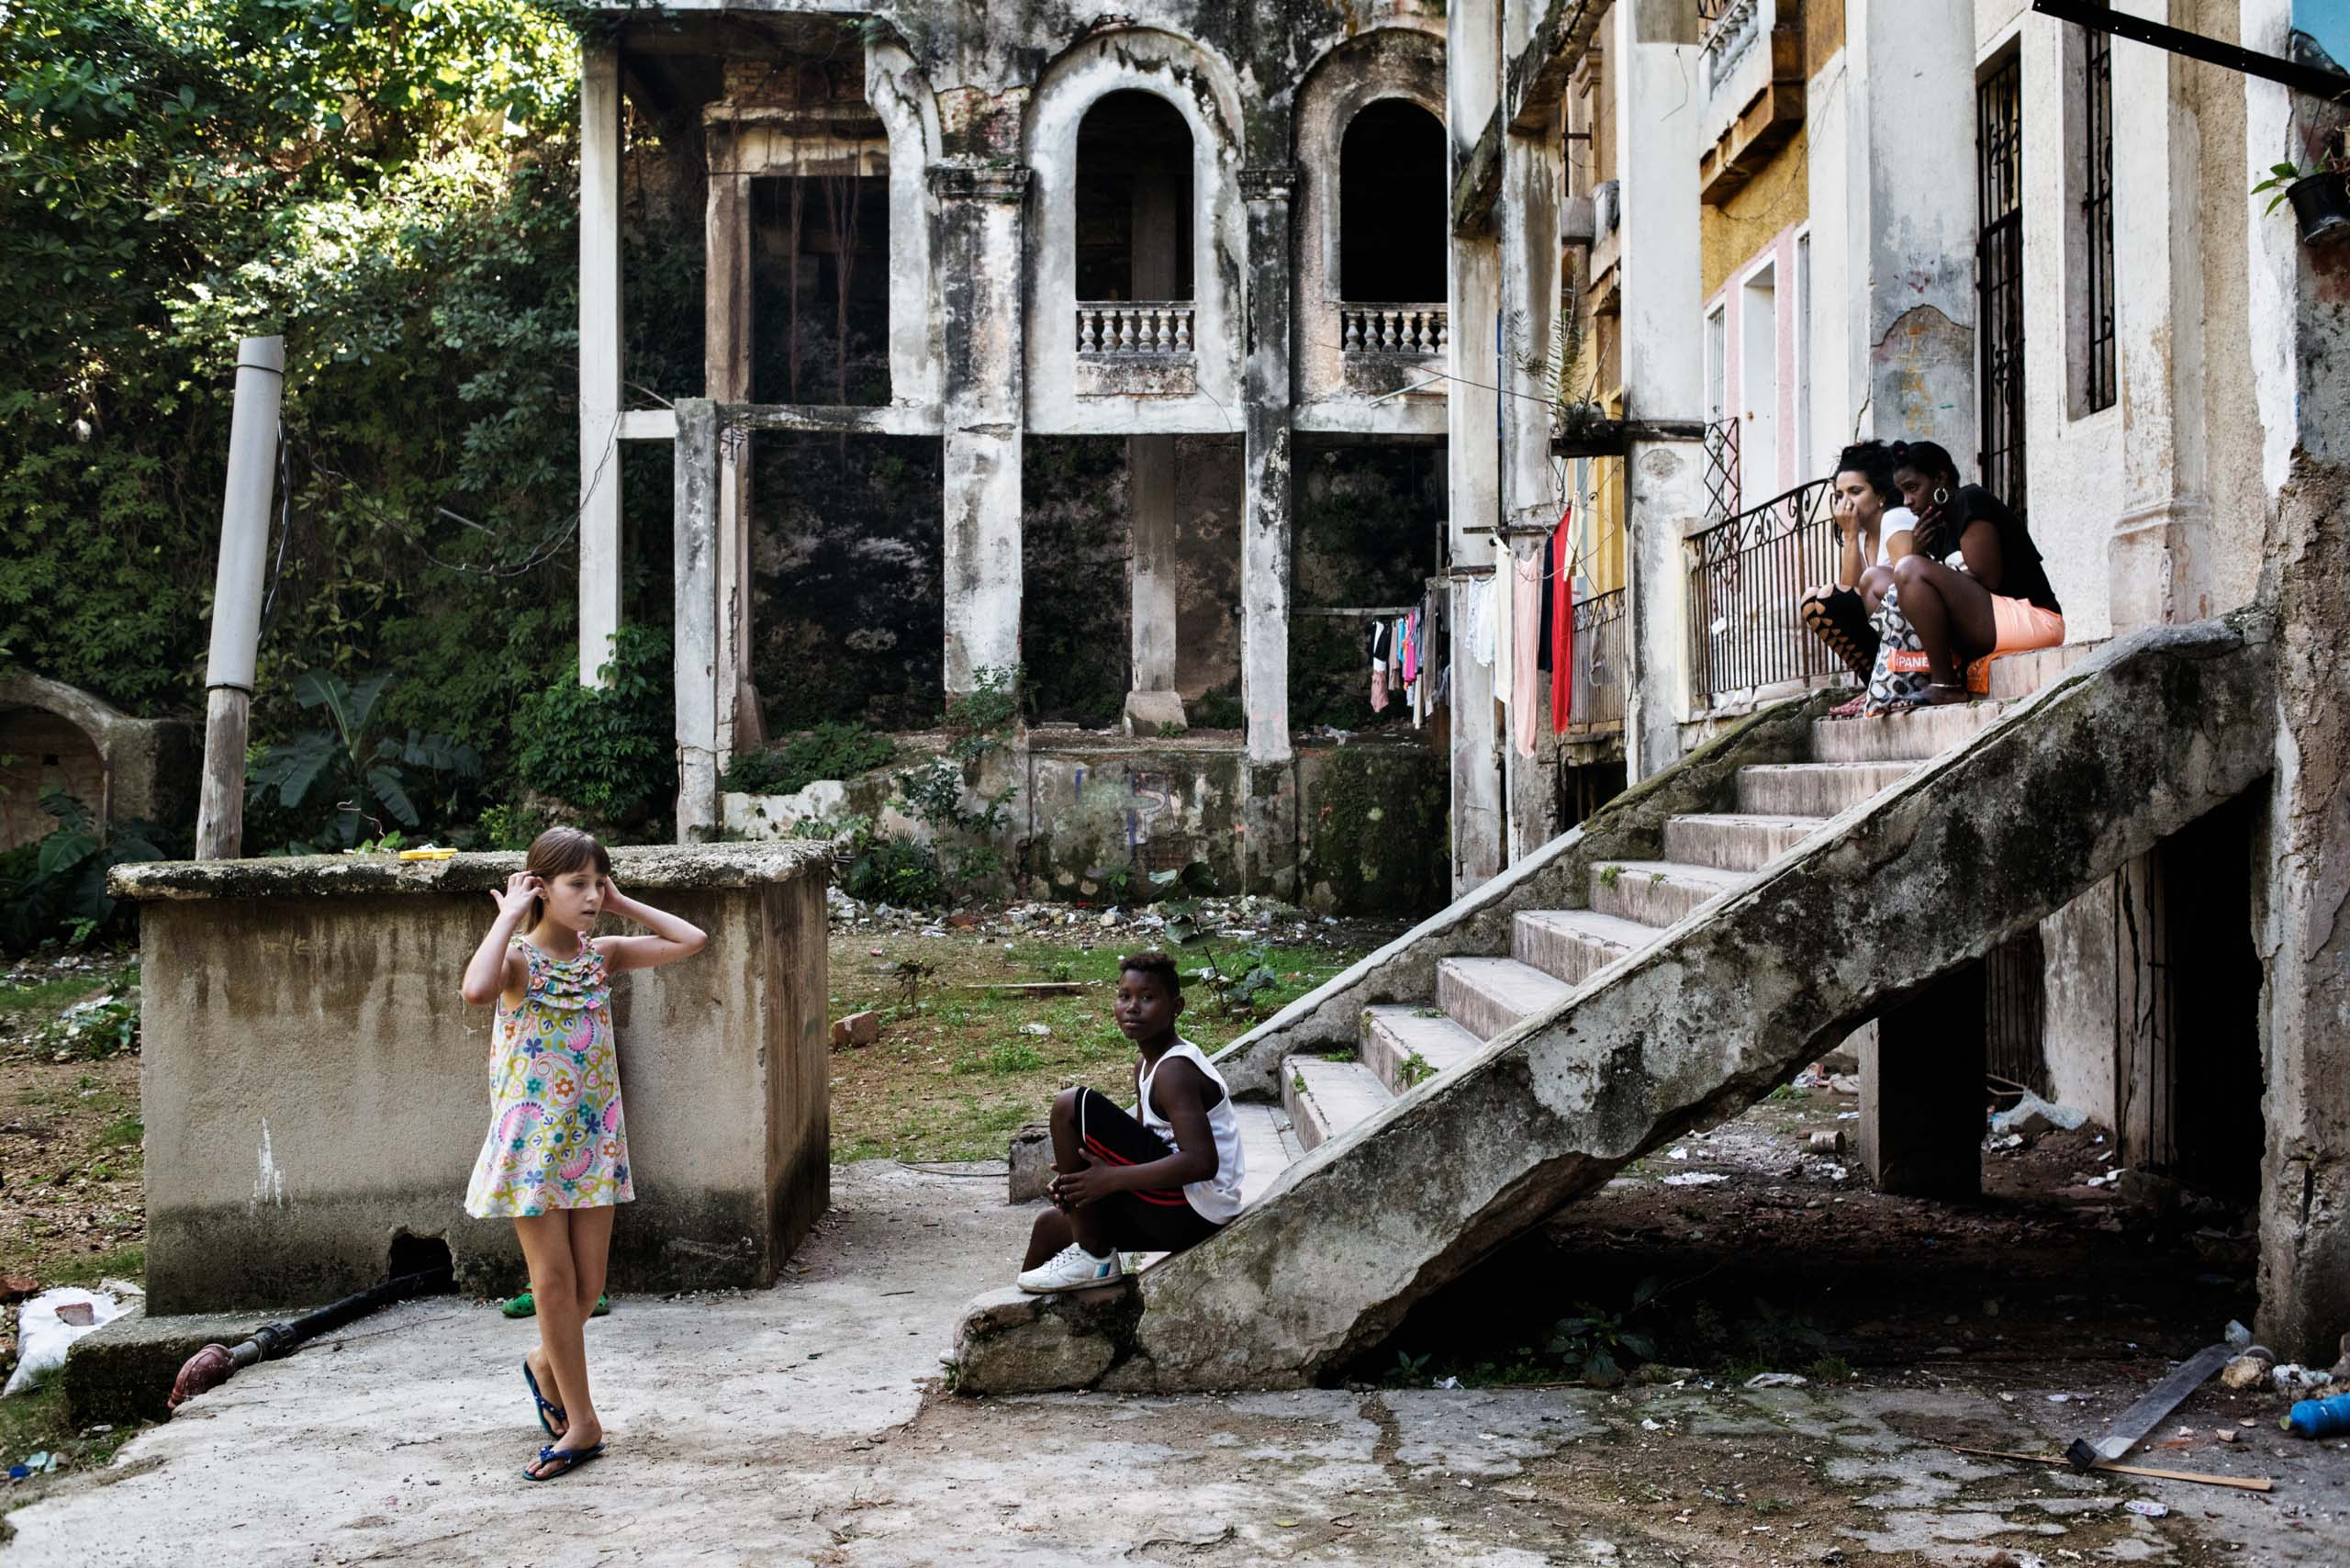 December 2015. Young girls play on the grounds of the Arcos building, an iconic building in the El Vedado neighborhood of Havana.